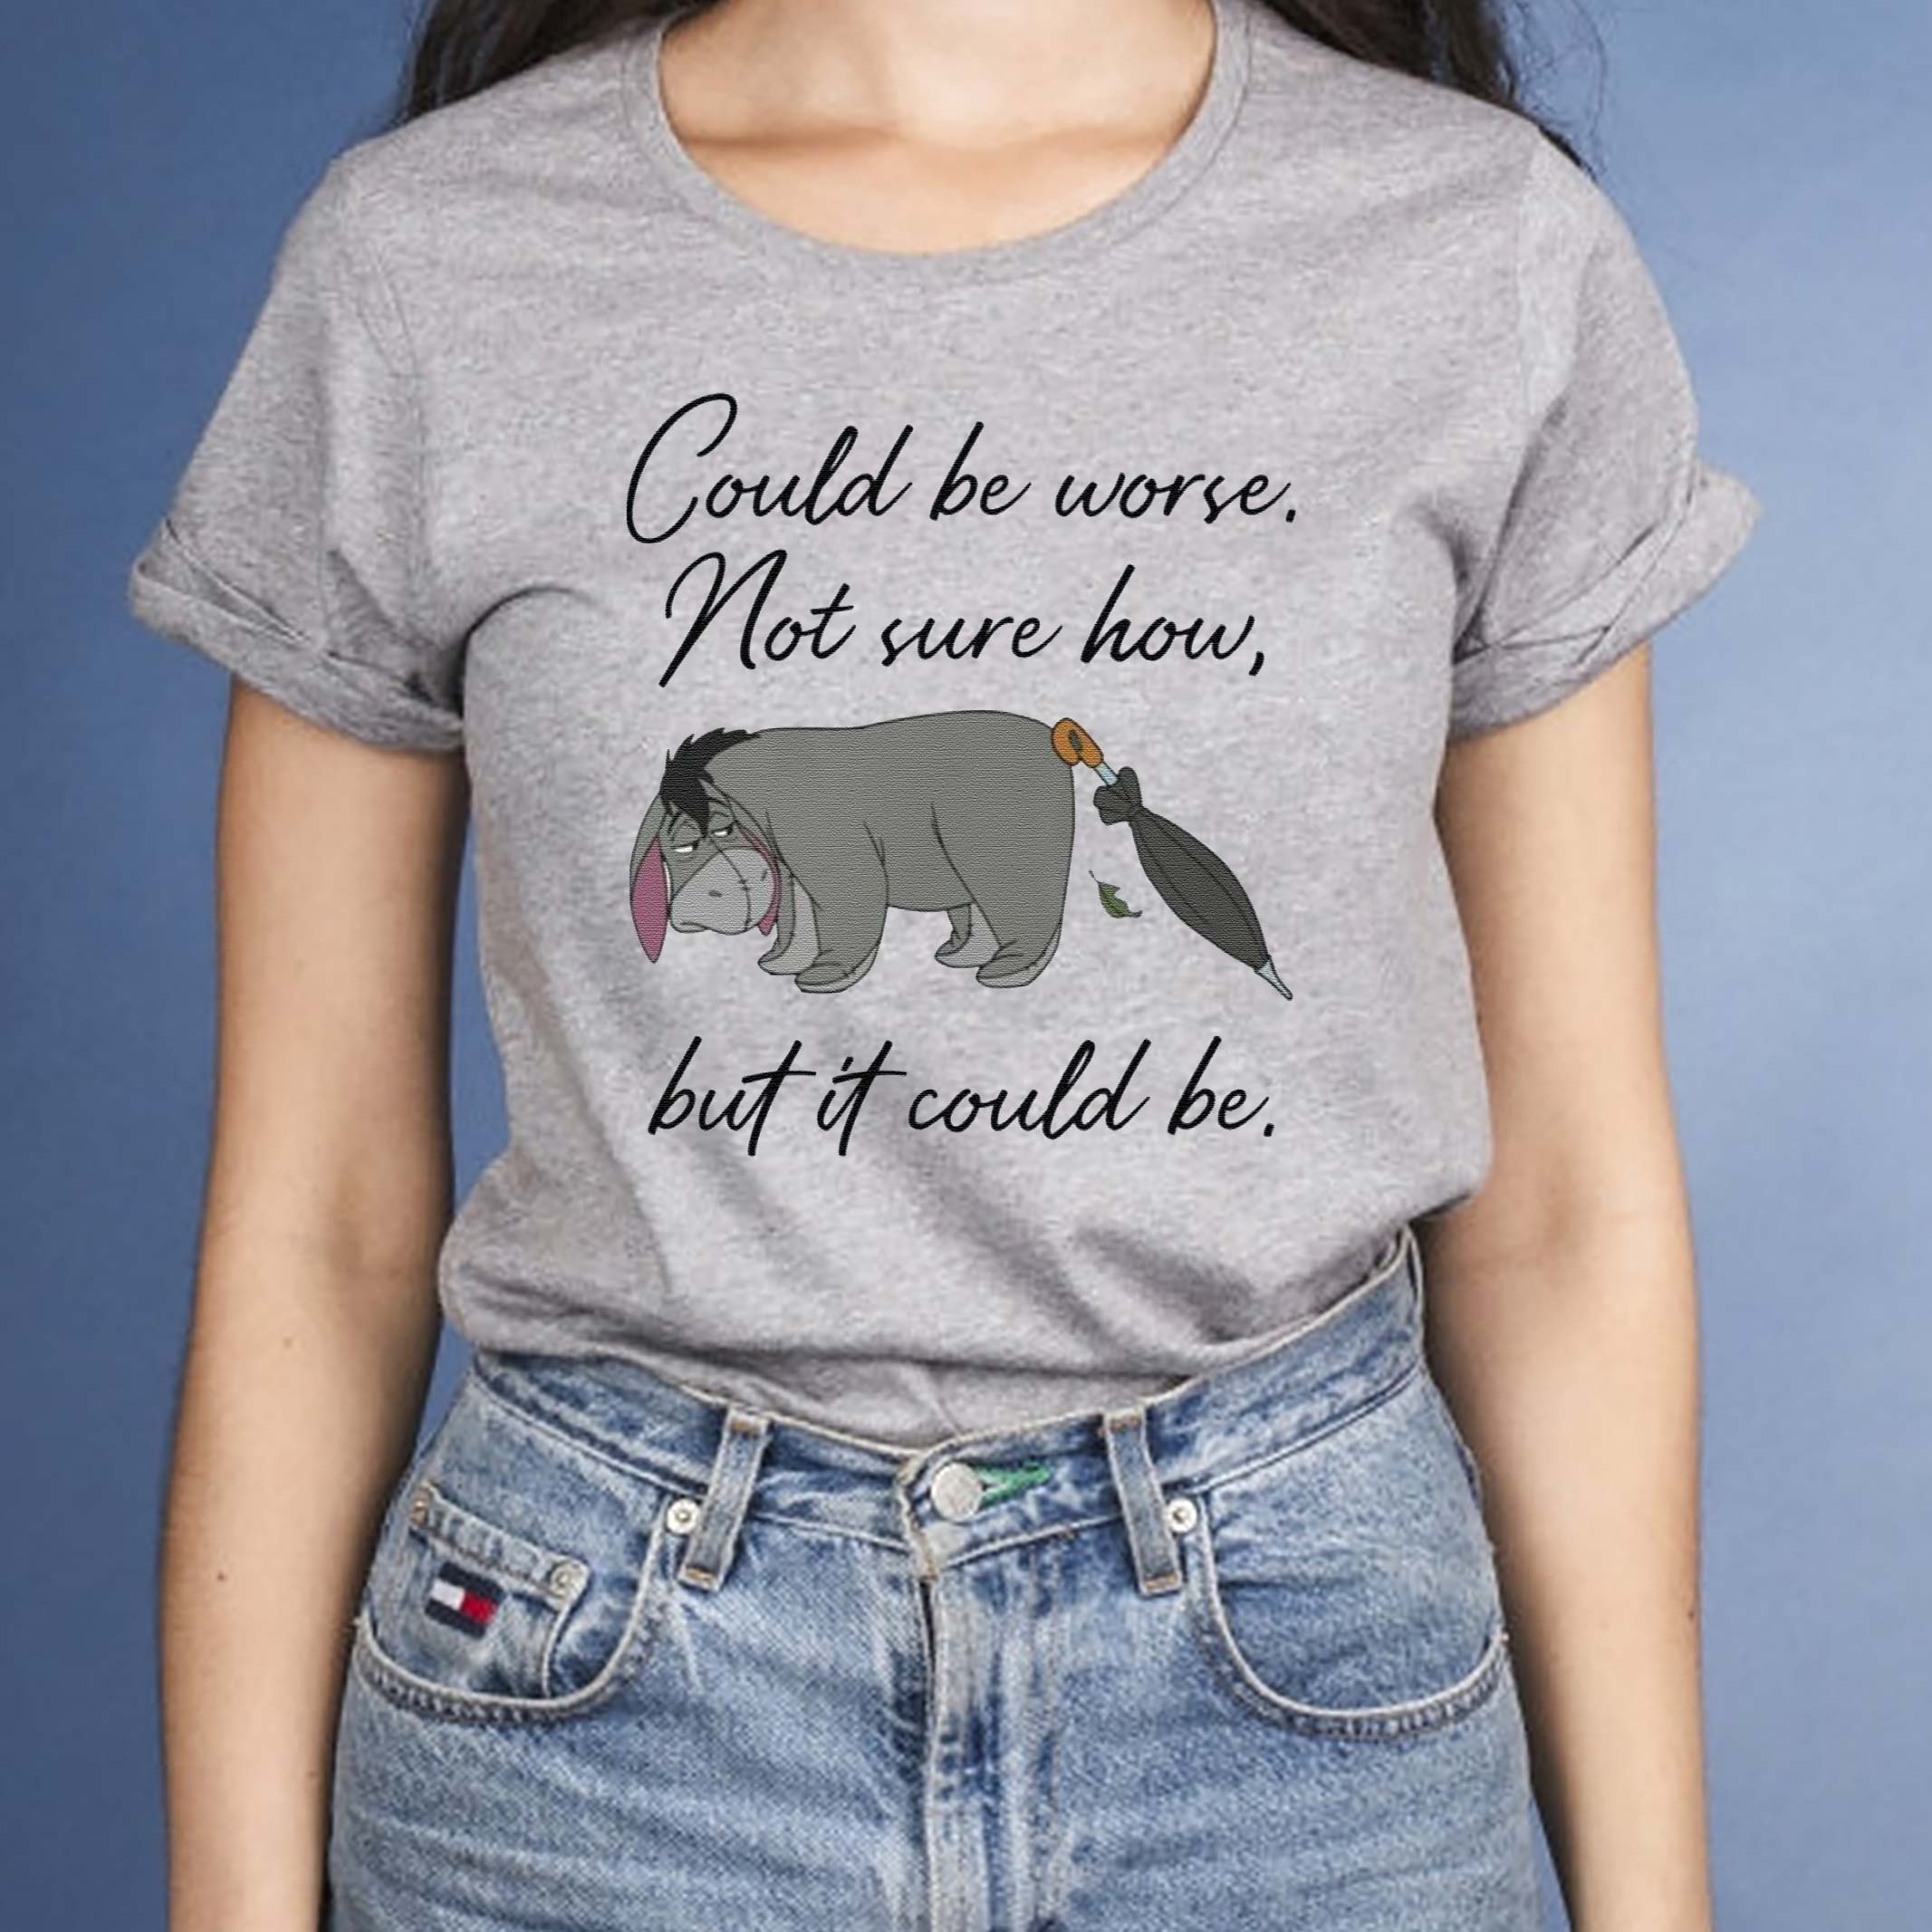 Eeyore-Could-be-worse-not-sure-how-but-it-could-be-tshirts